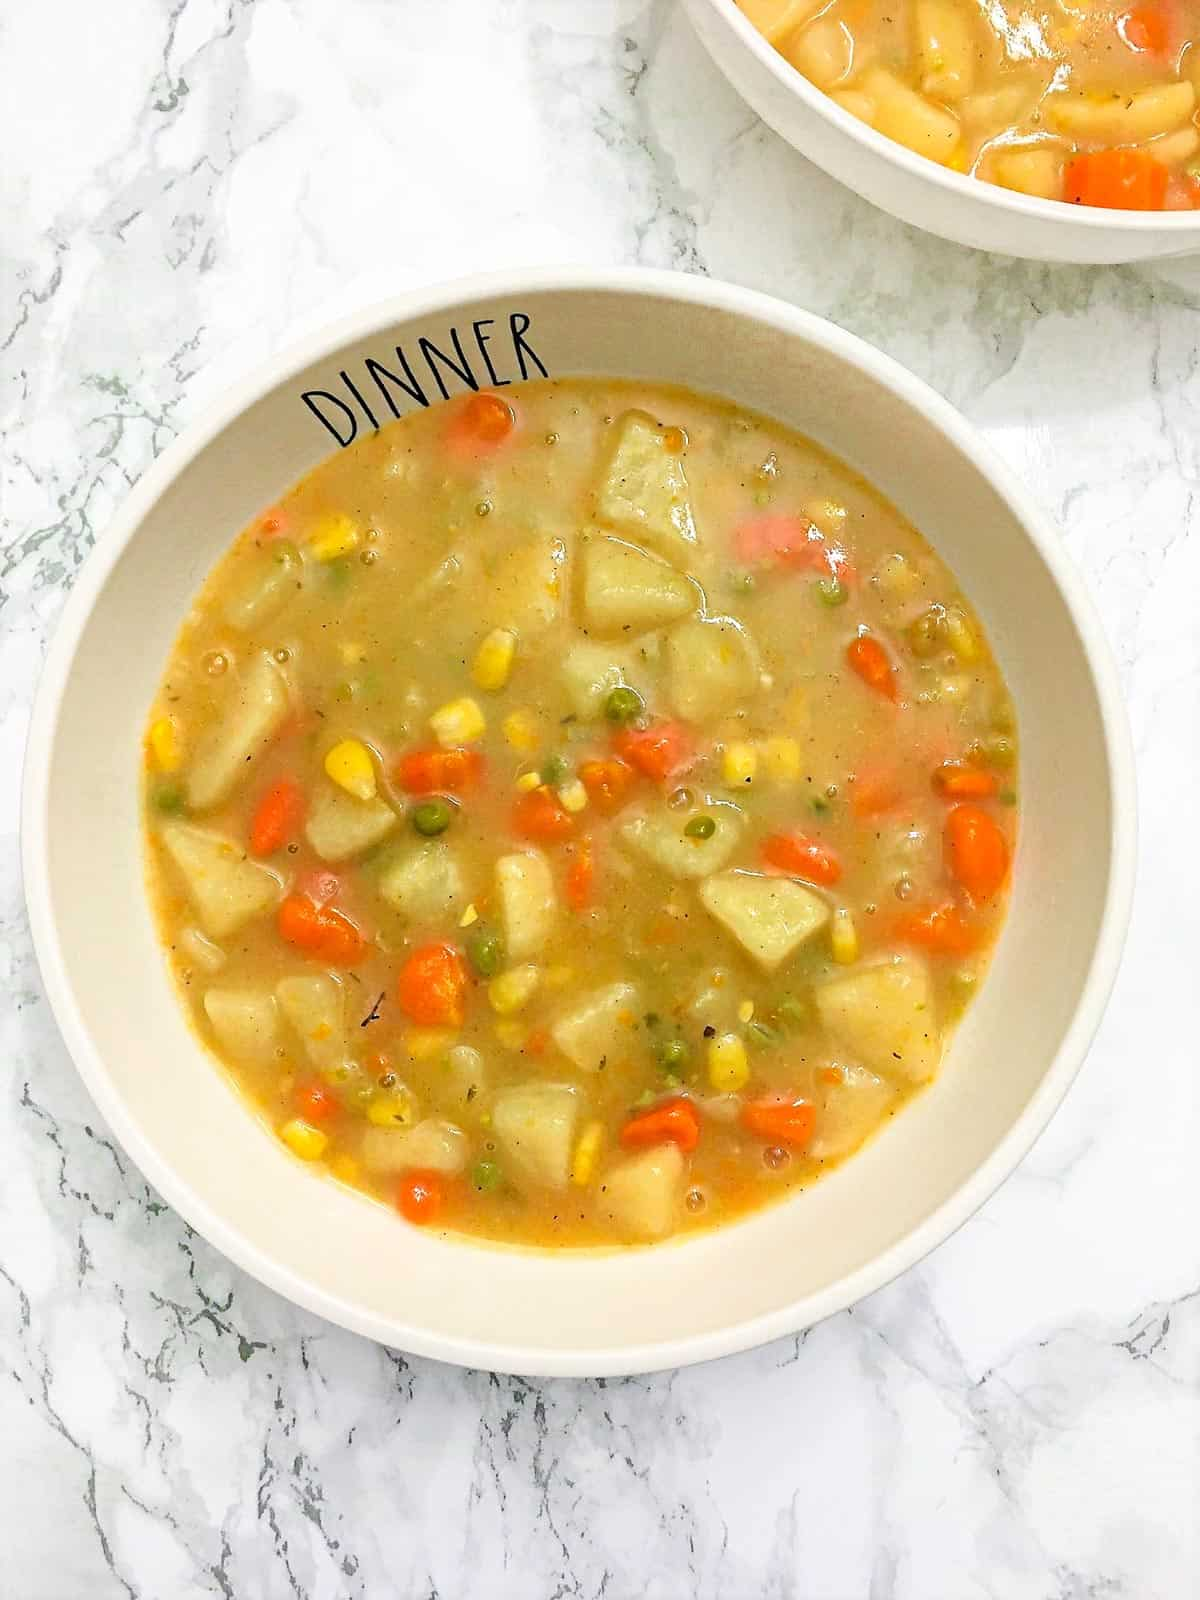 Bowl of soup with potatoes, carrots, corn, peas in bowl that has text spelling dinner.